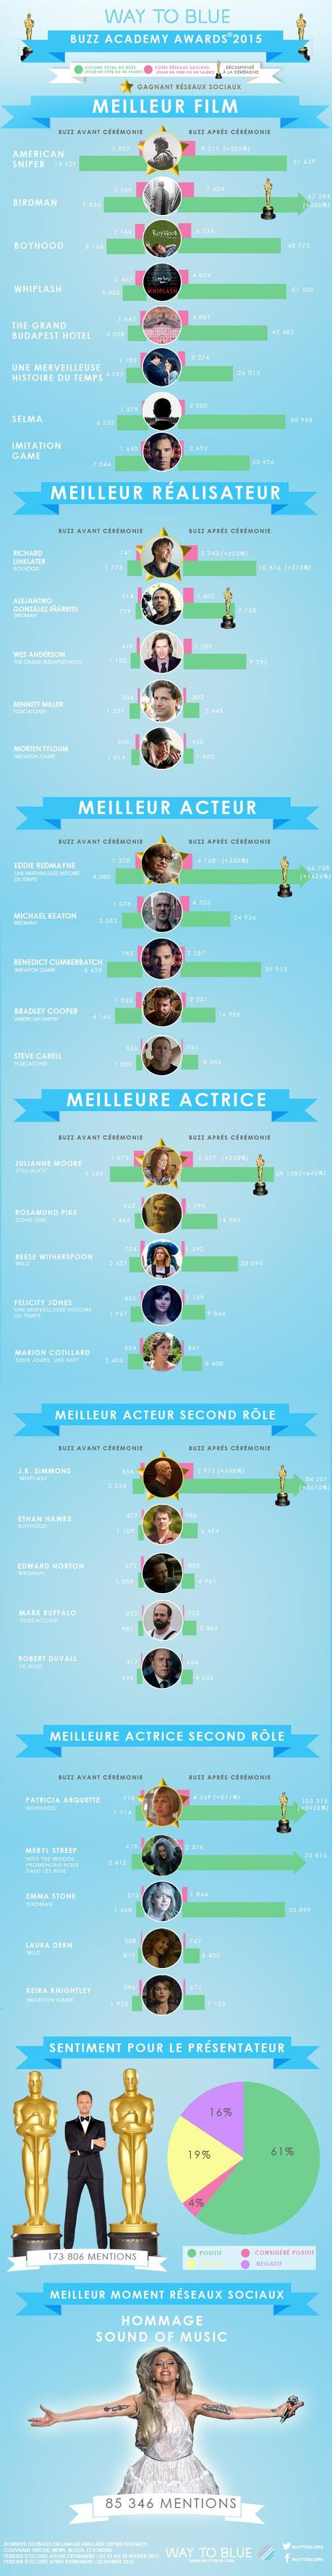 INFOGRAPHIC_ACADEMY_AWARDS_2015_HD